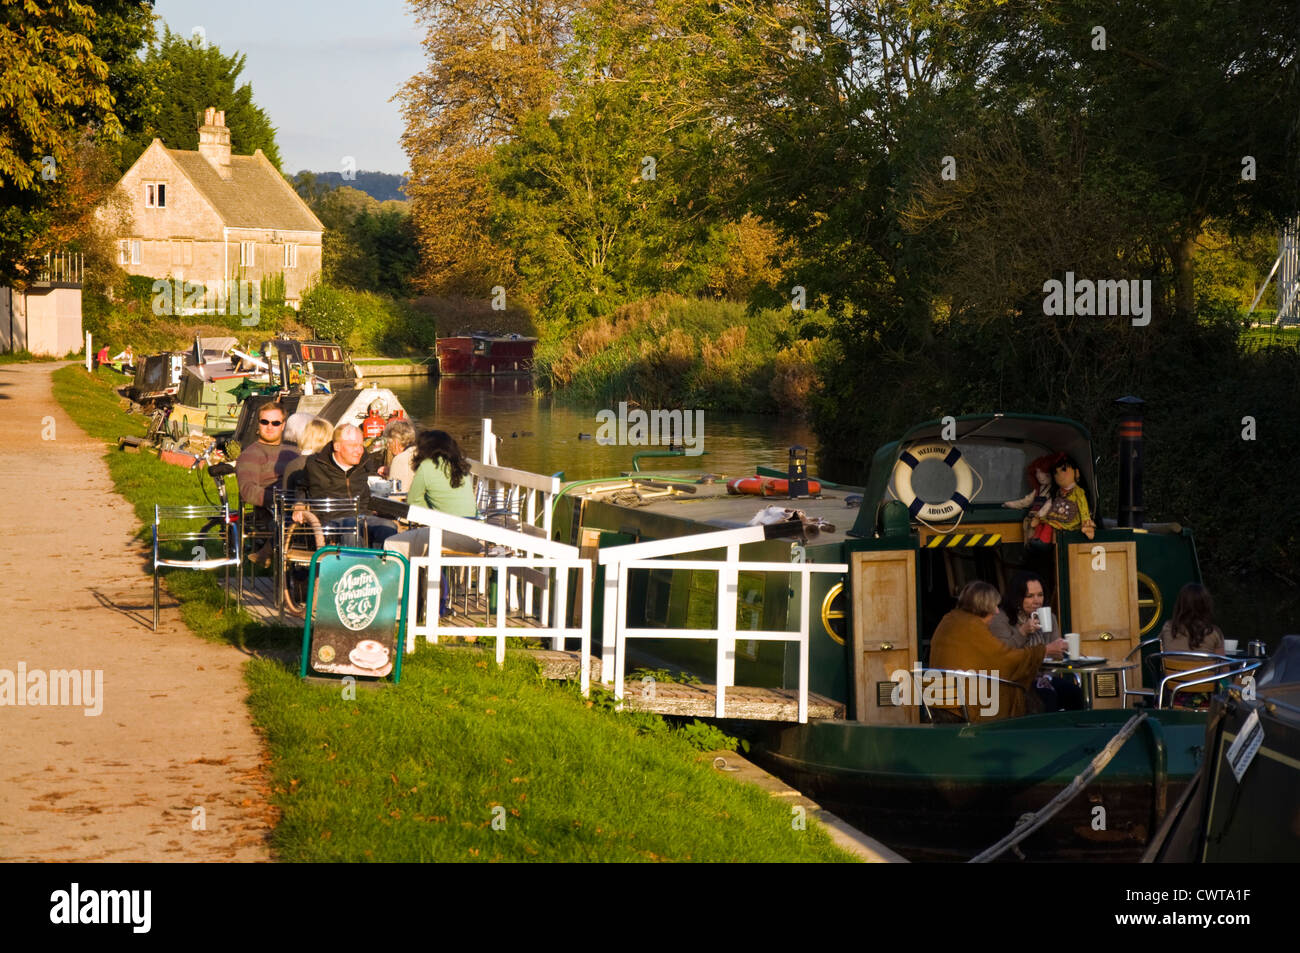 Customer sitting by the Kennet and Avon canal enjoying coffee tea and cakes at the Raft Cafe Boat - Stock Image